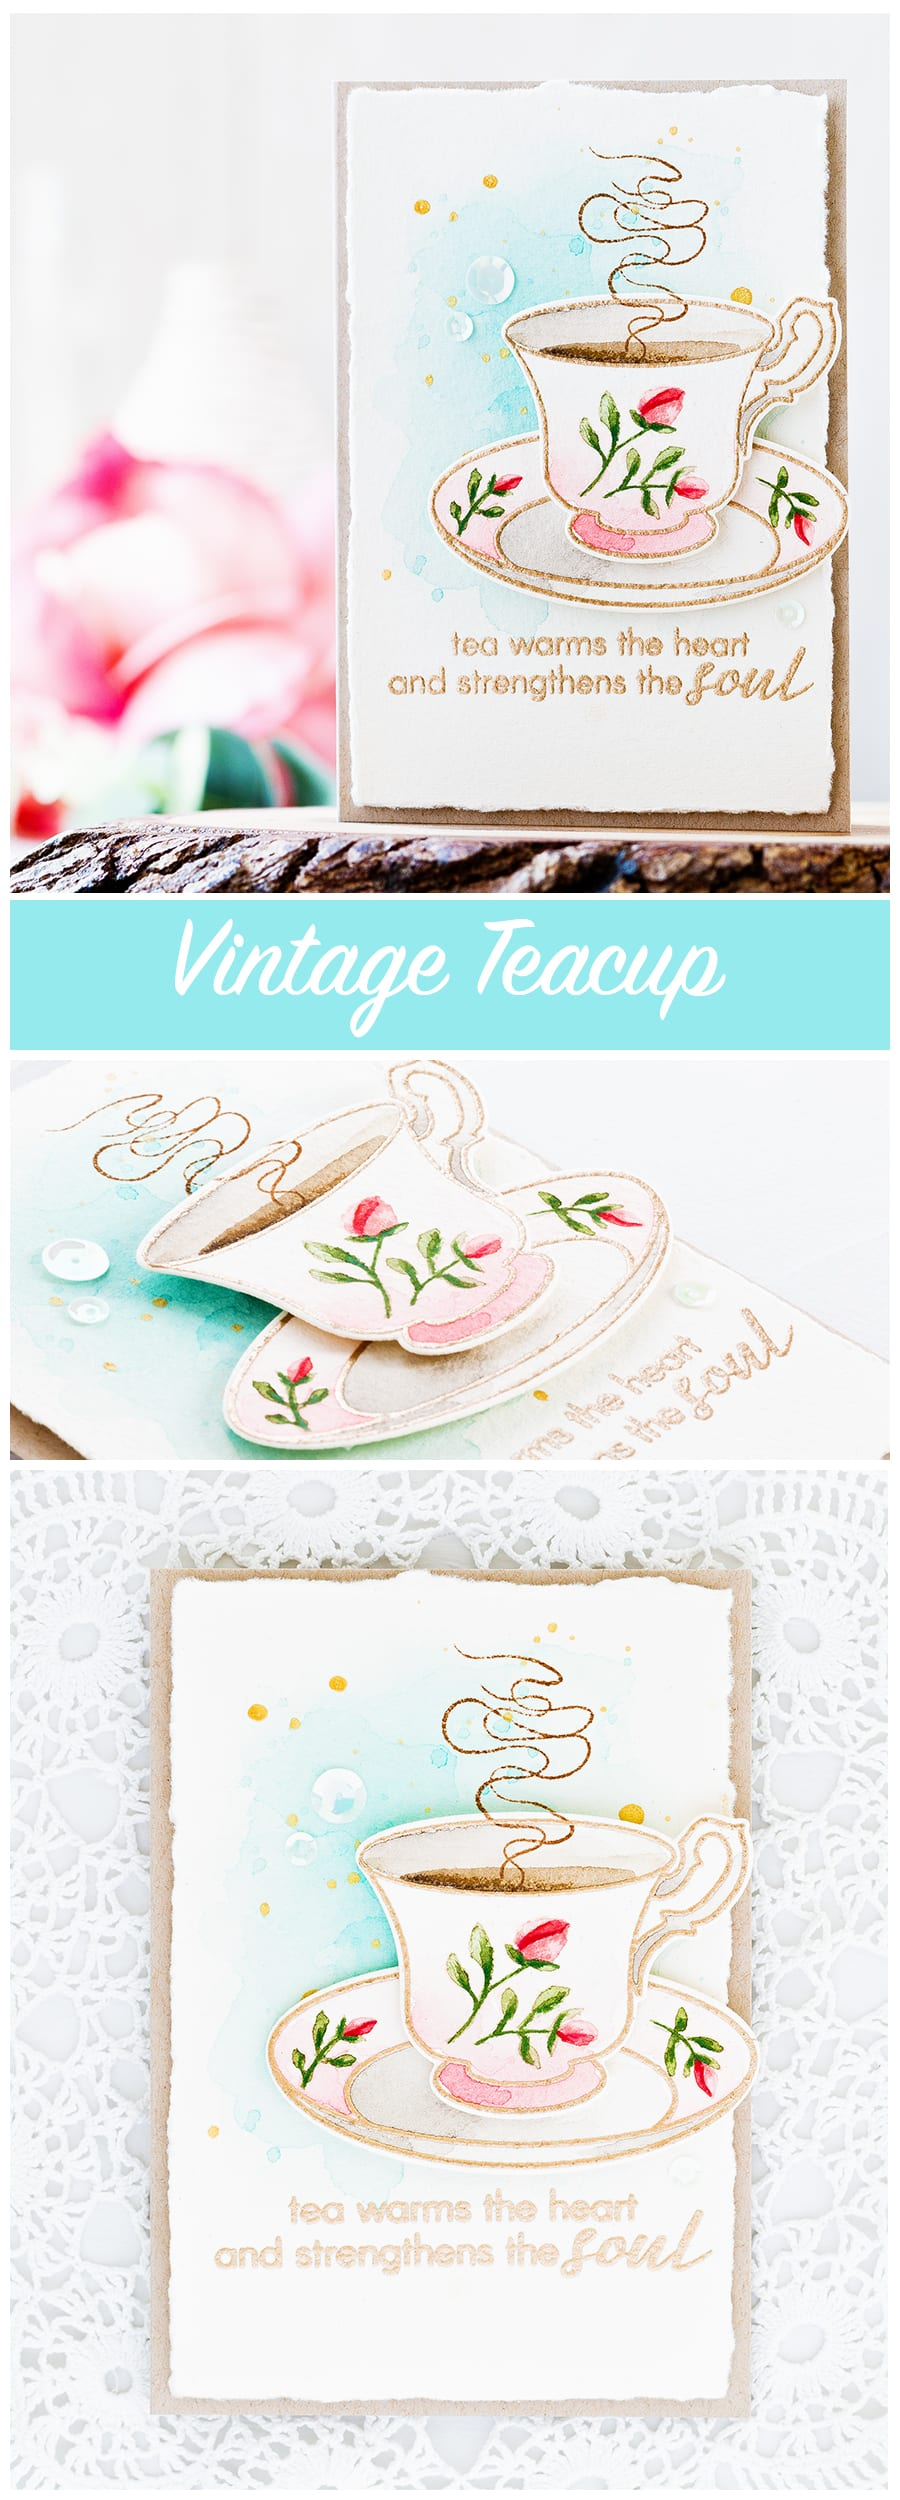 Video step by step tutorial of watercoloring this vintage teacup. Find out more about this card by clicking on the following link: https://limedoodledesign.com/2016/11/video-vintage-teacup-watercolor-giveaway/